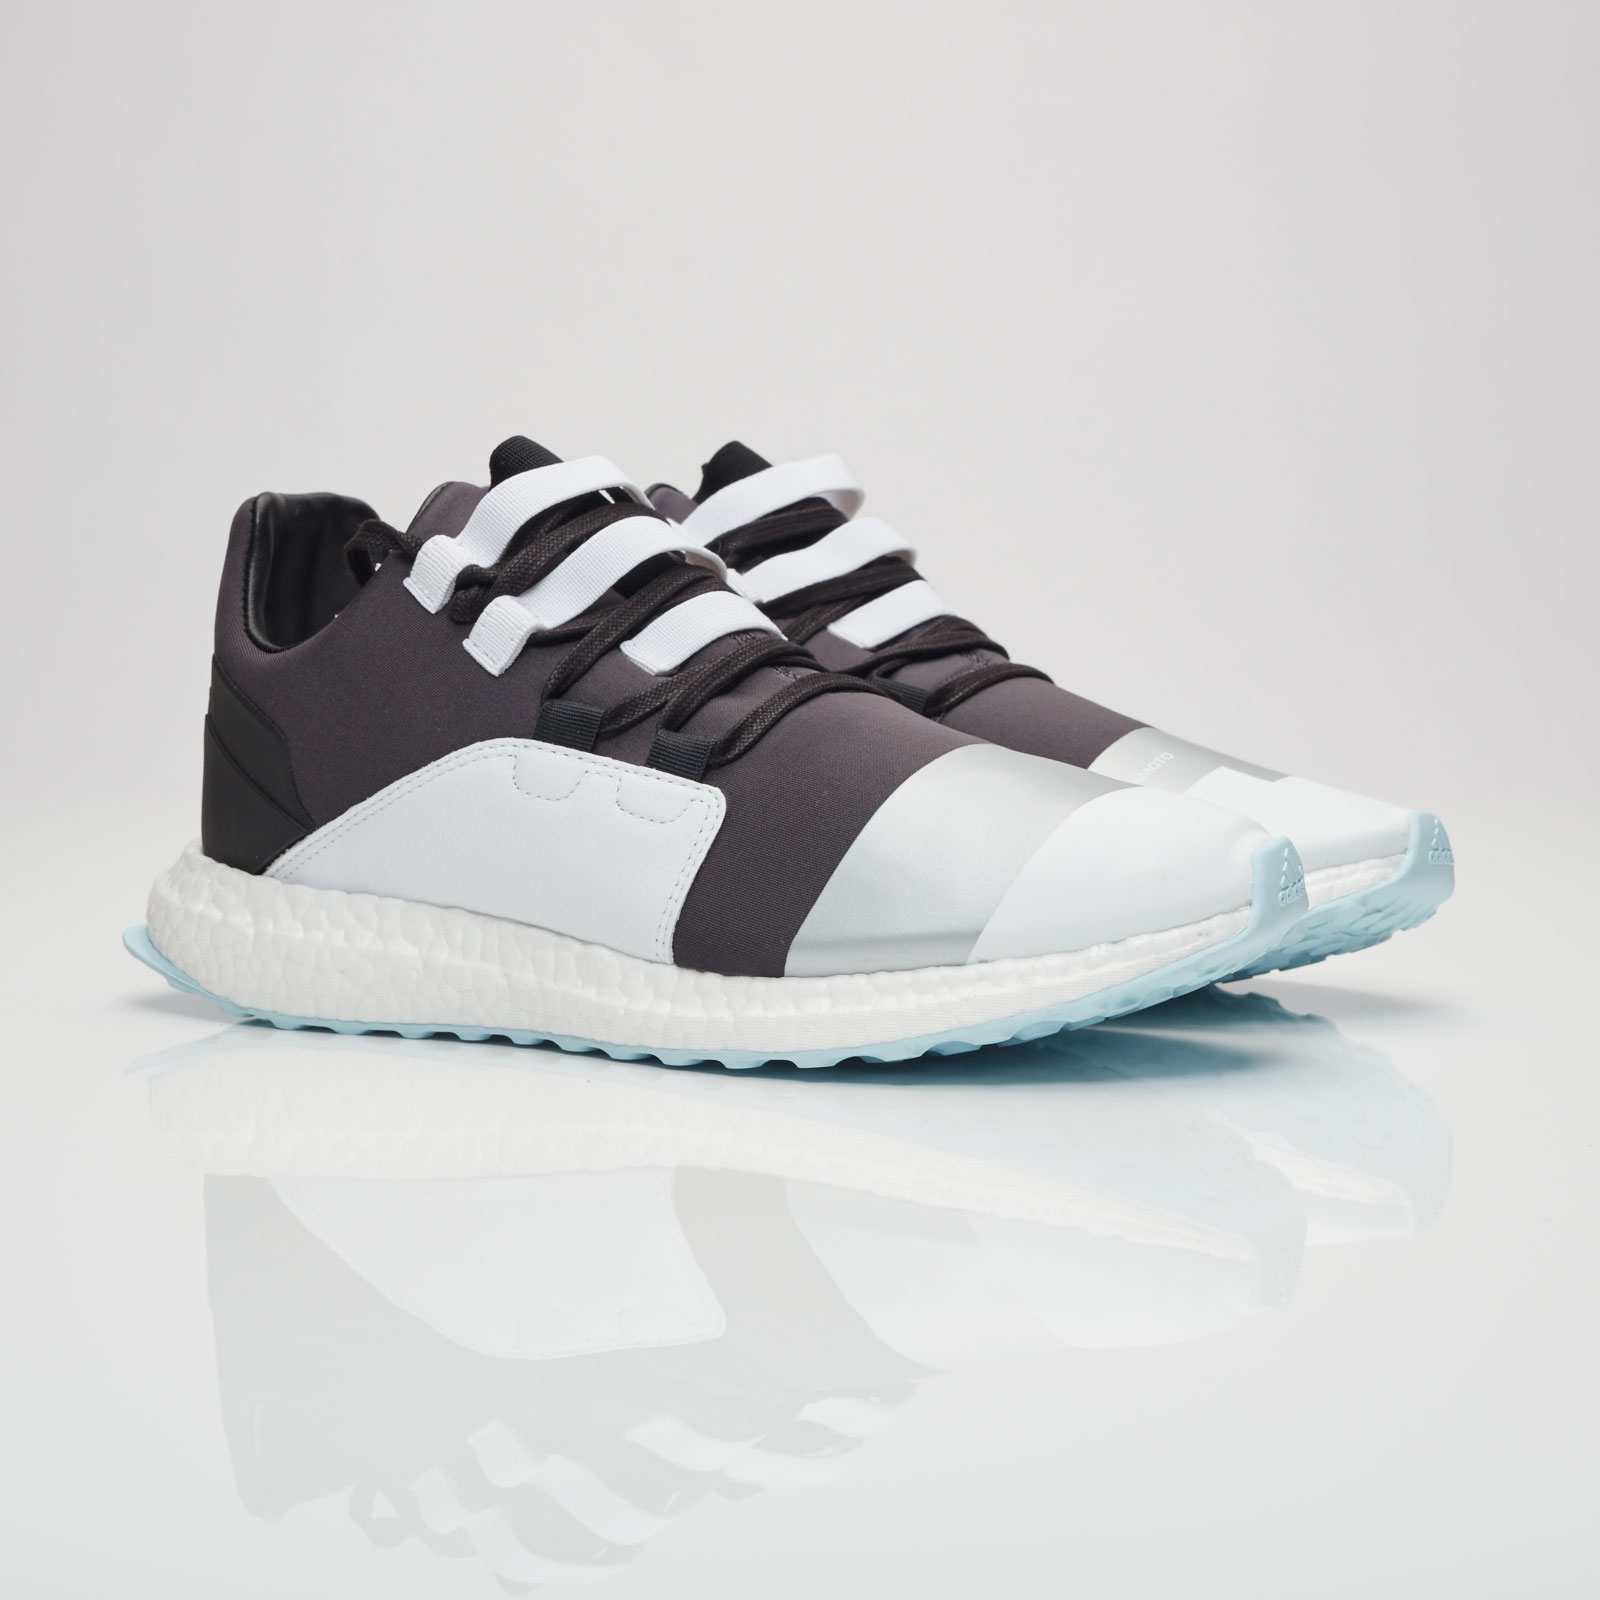 adidas Kozoko Low - By2633 - Sneakersnstuff  15f20202e